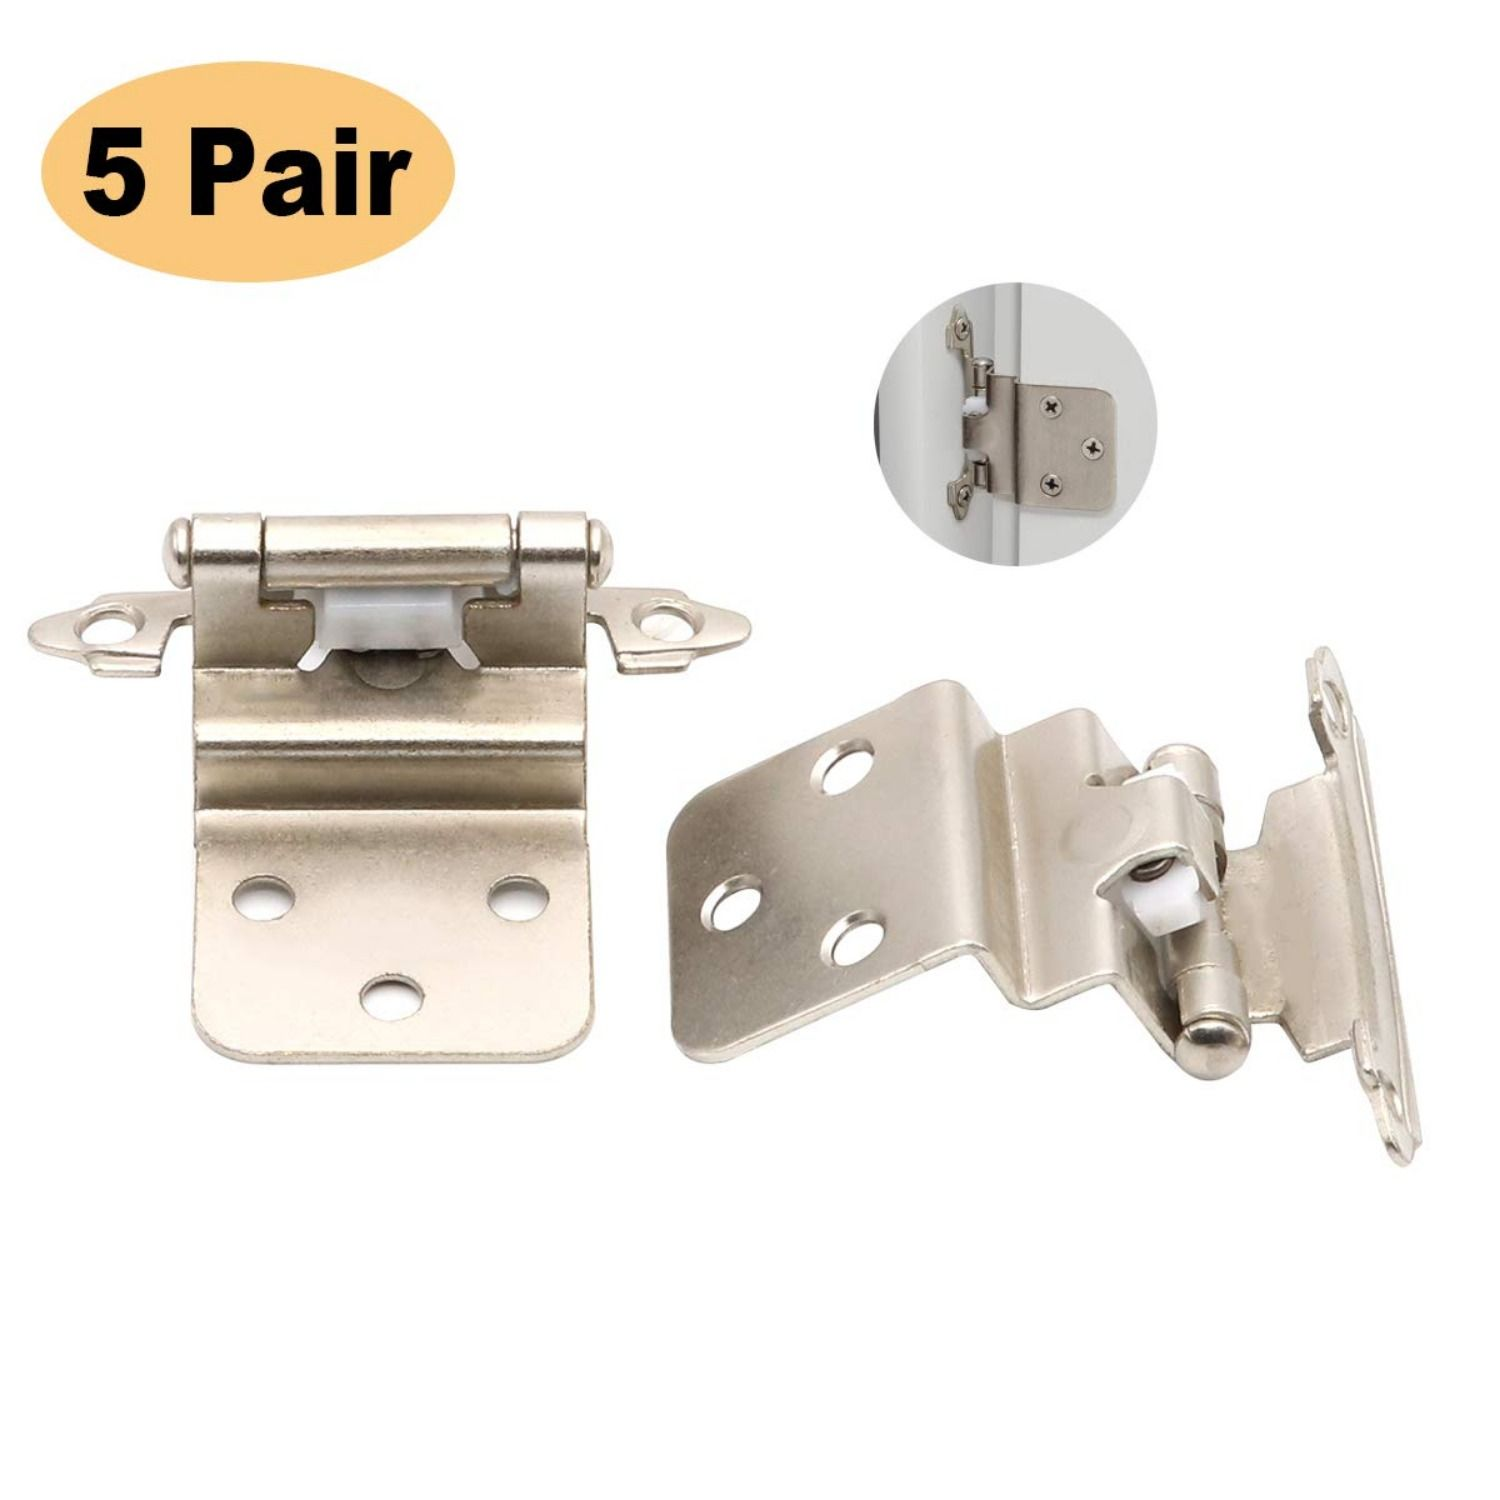 Measurements Overlay 3 8 In 10 Mm In Set Hinge Width 2 8 In 70mm Fixing Holes 2 126 In 54mm Quality Our Kitchen Cupboard Cabinet Hinges Are M